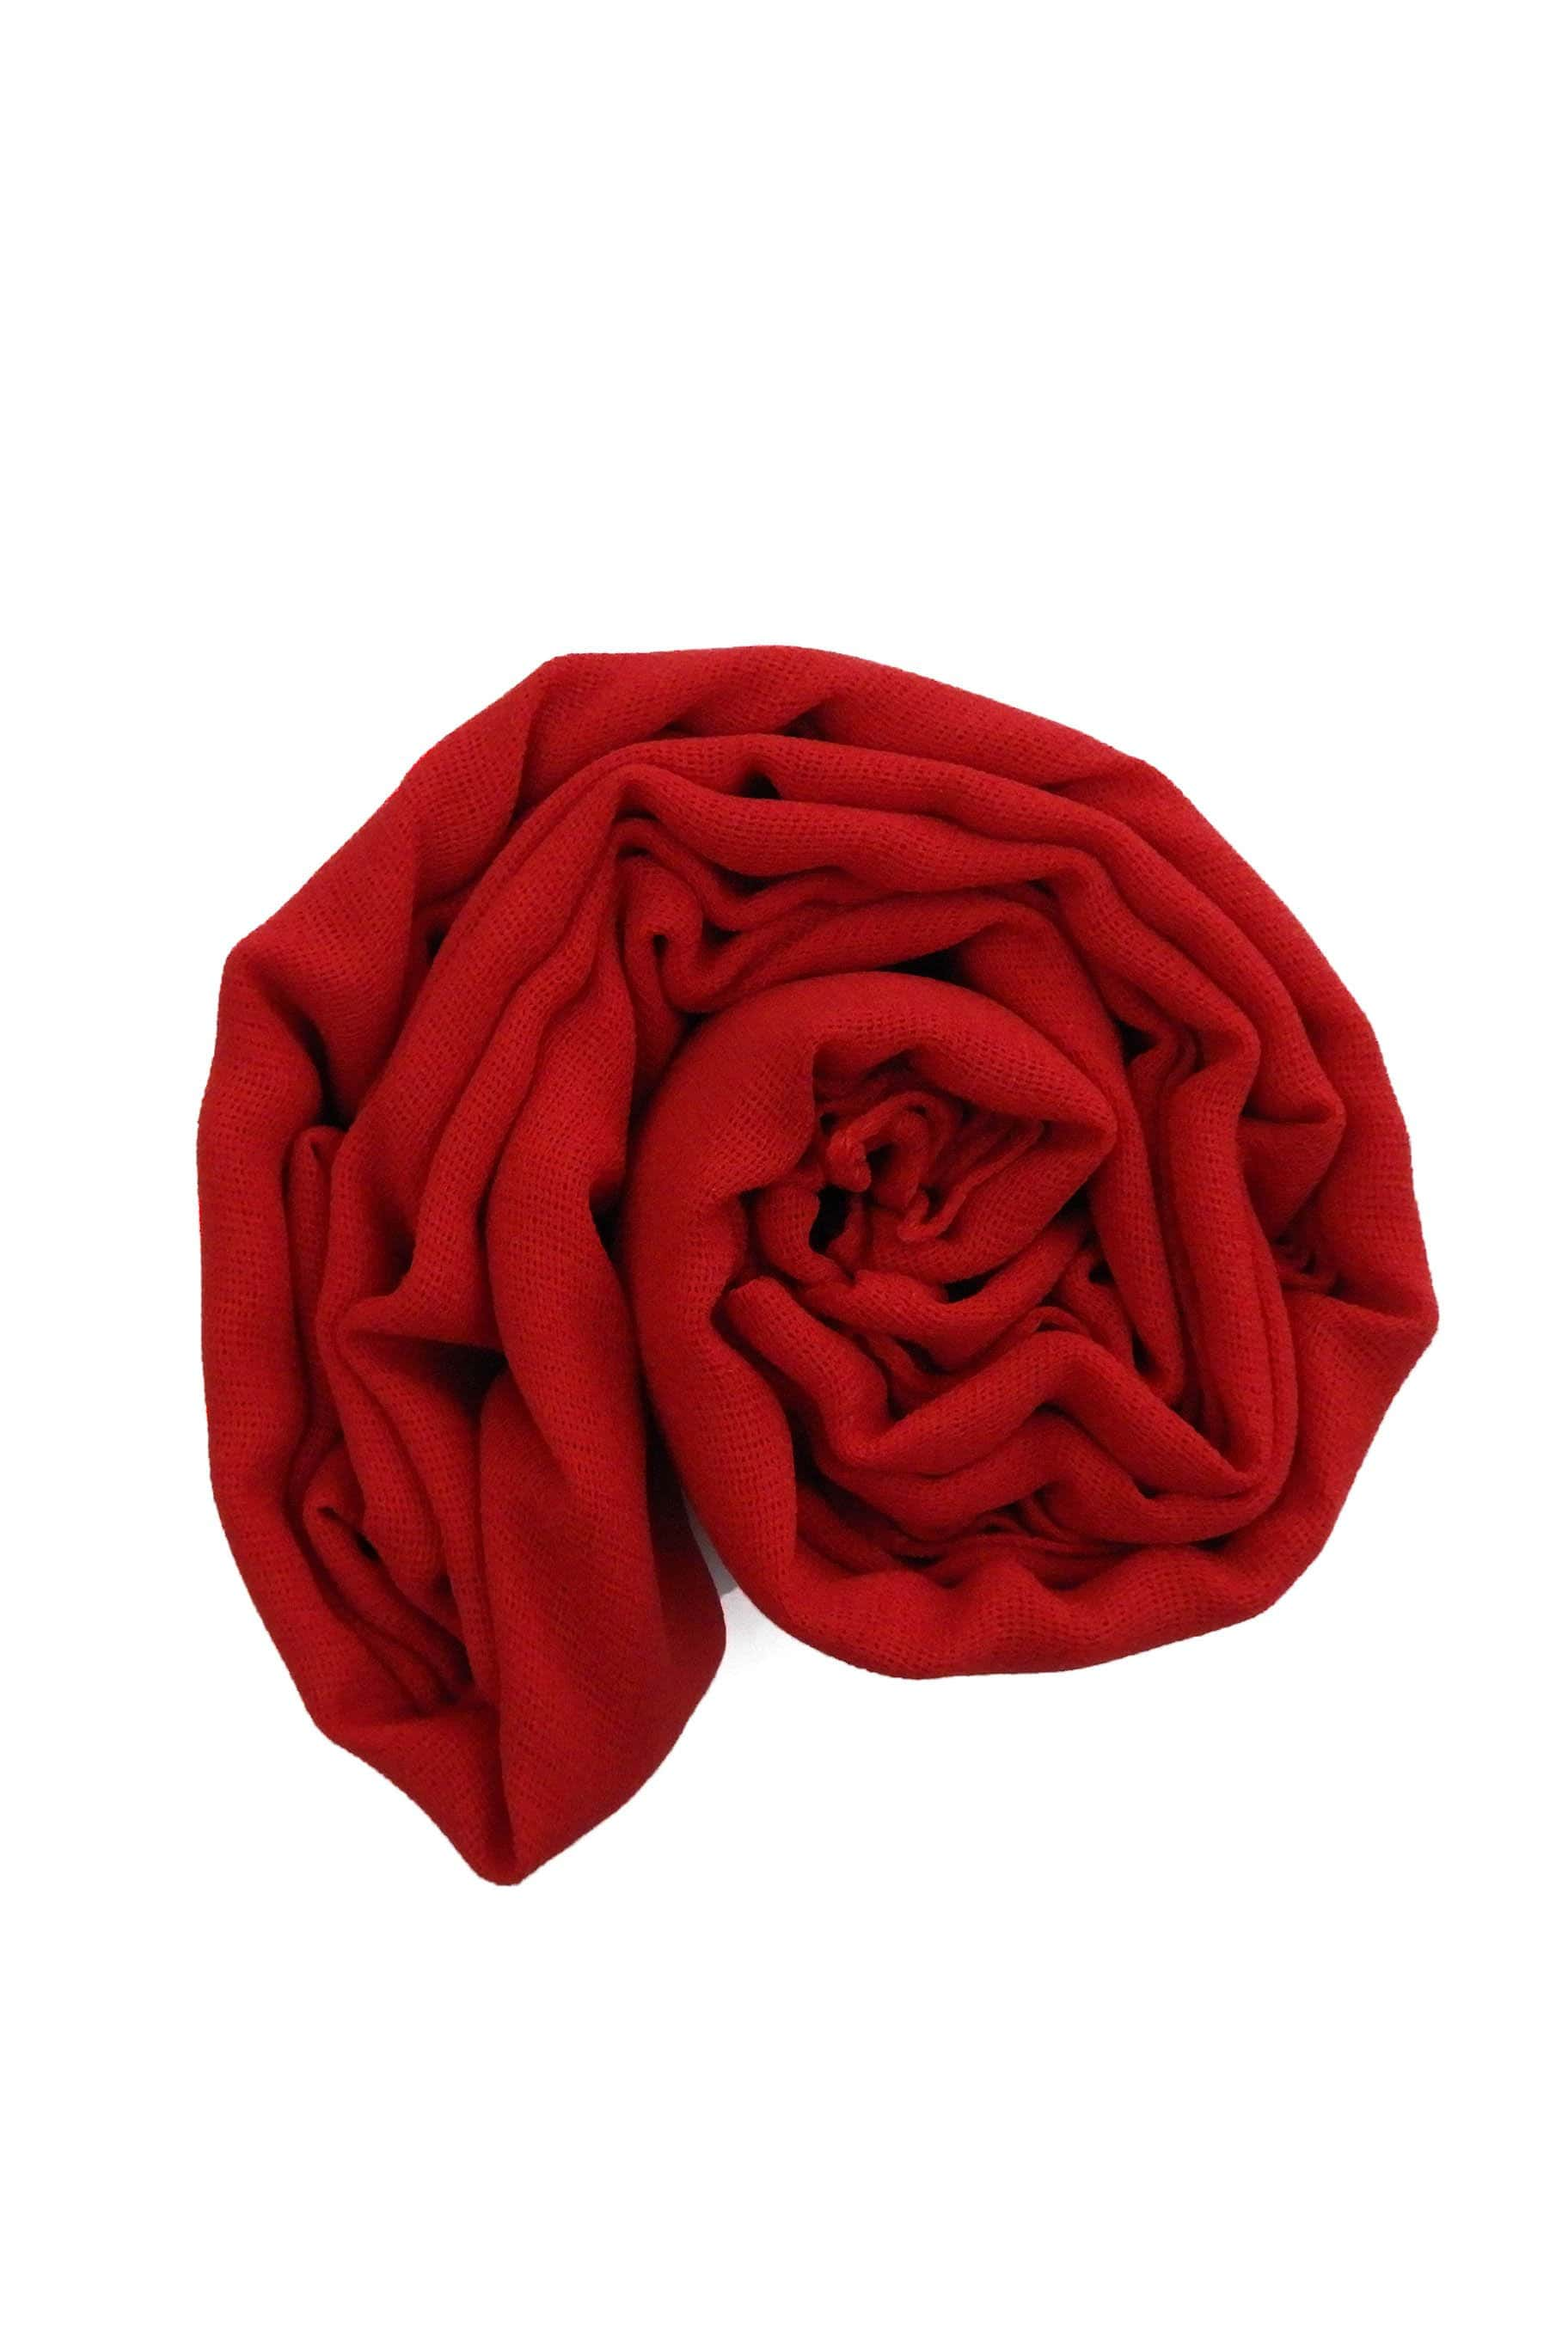 Rose Red Jute Cotton - The Modest Look